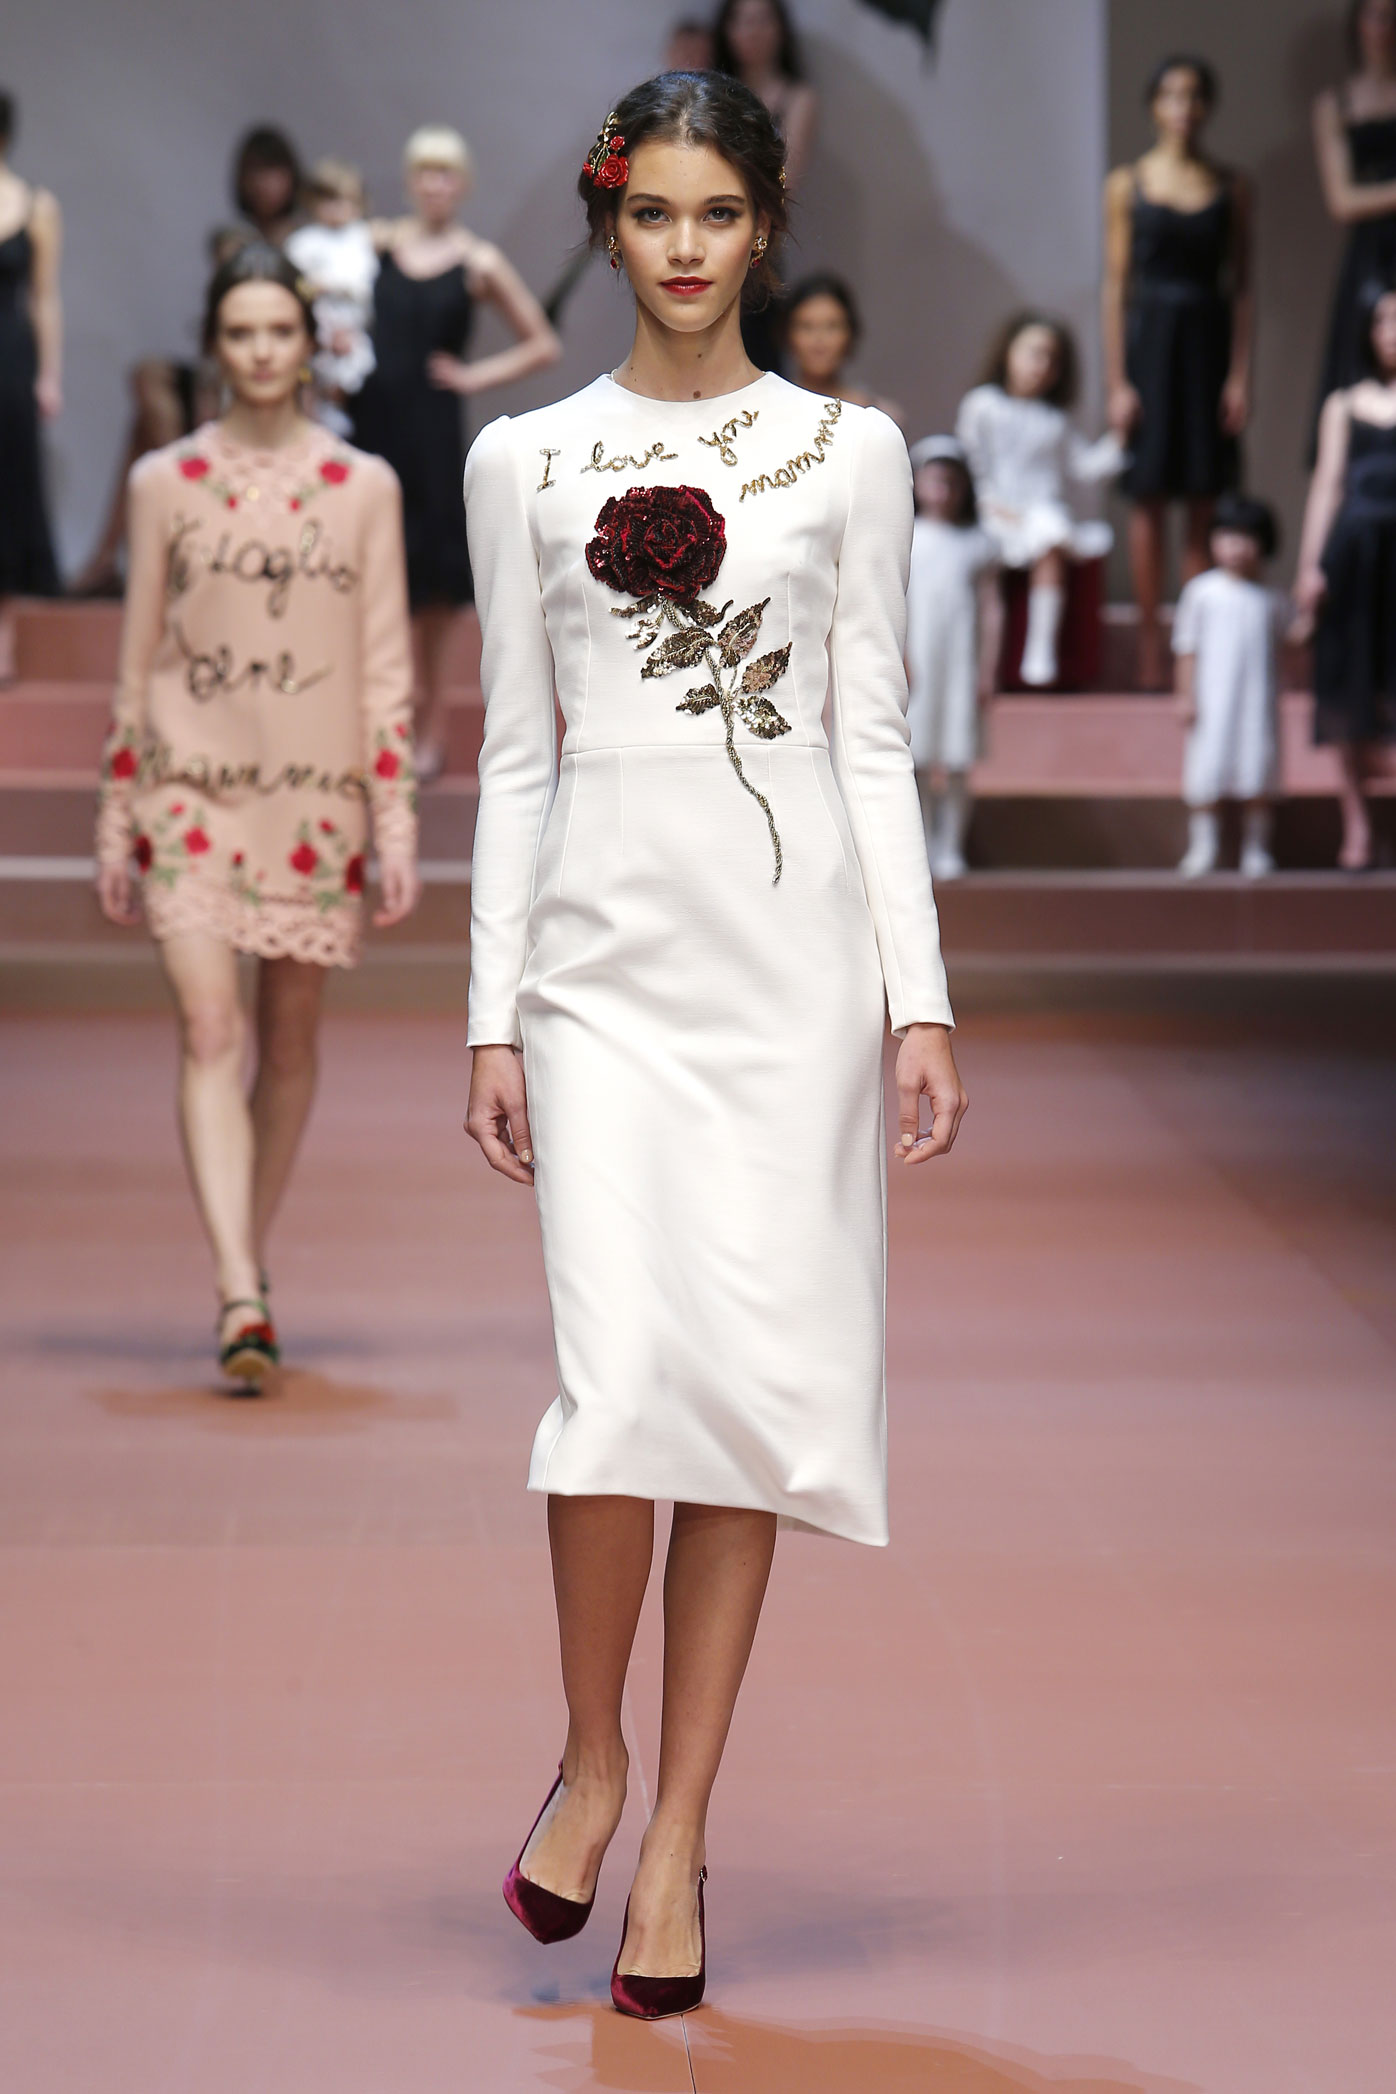 dolce-and-gabbana-winter-2016-women-fashion-show-runway-01-zoom